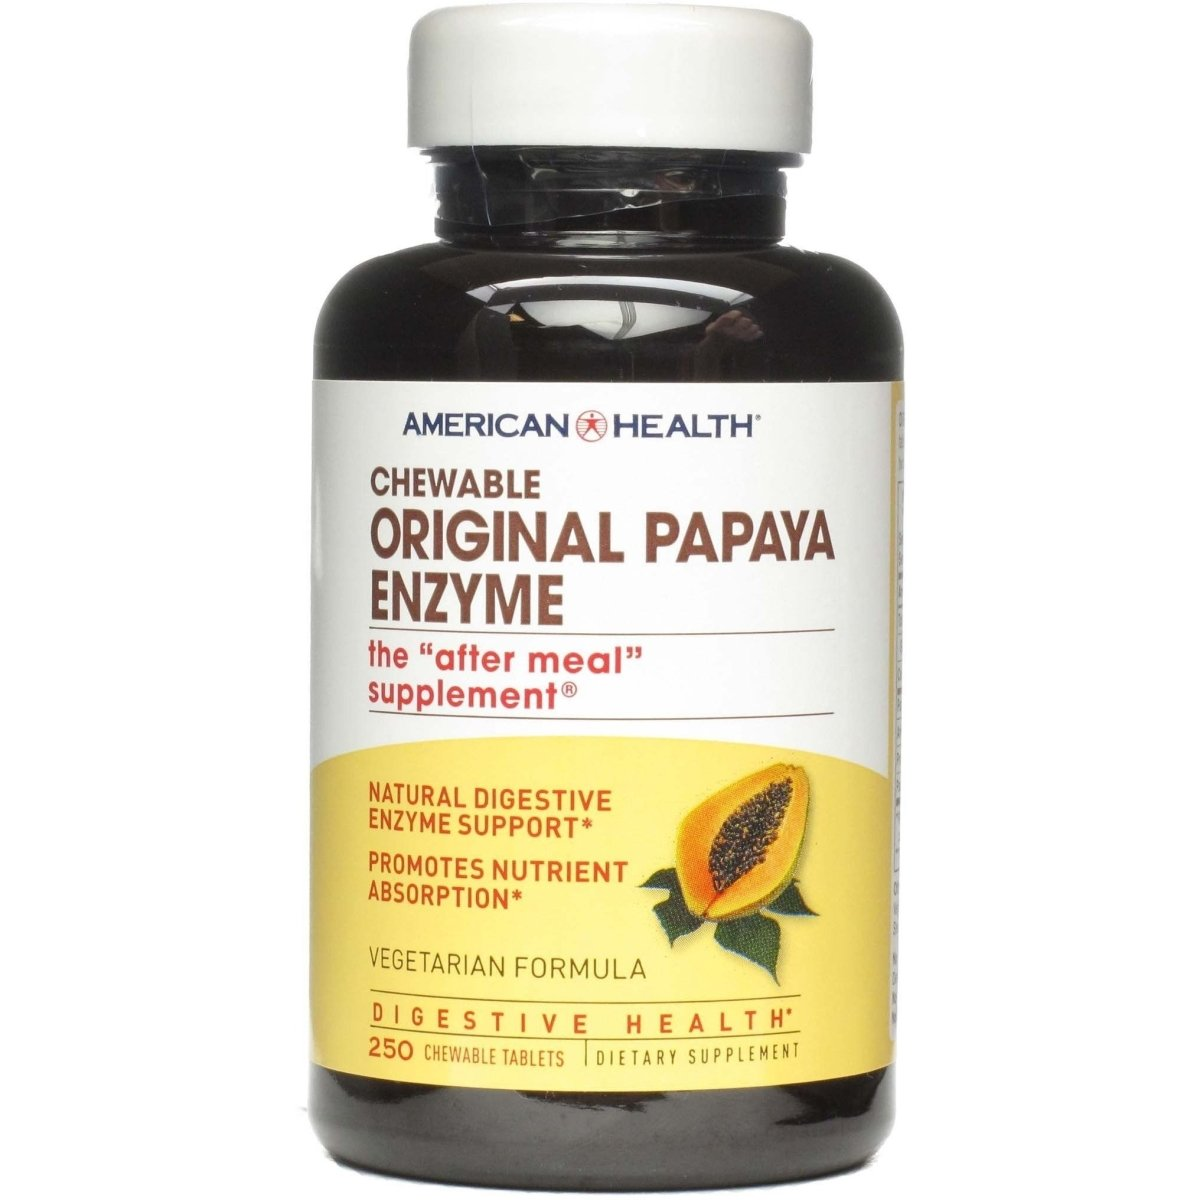 Chewable - Original Papaya Enzyme - 250 Tablets